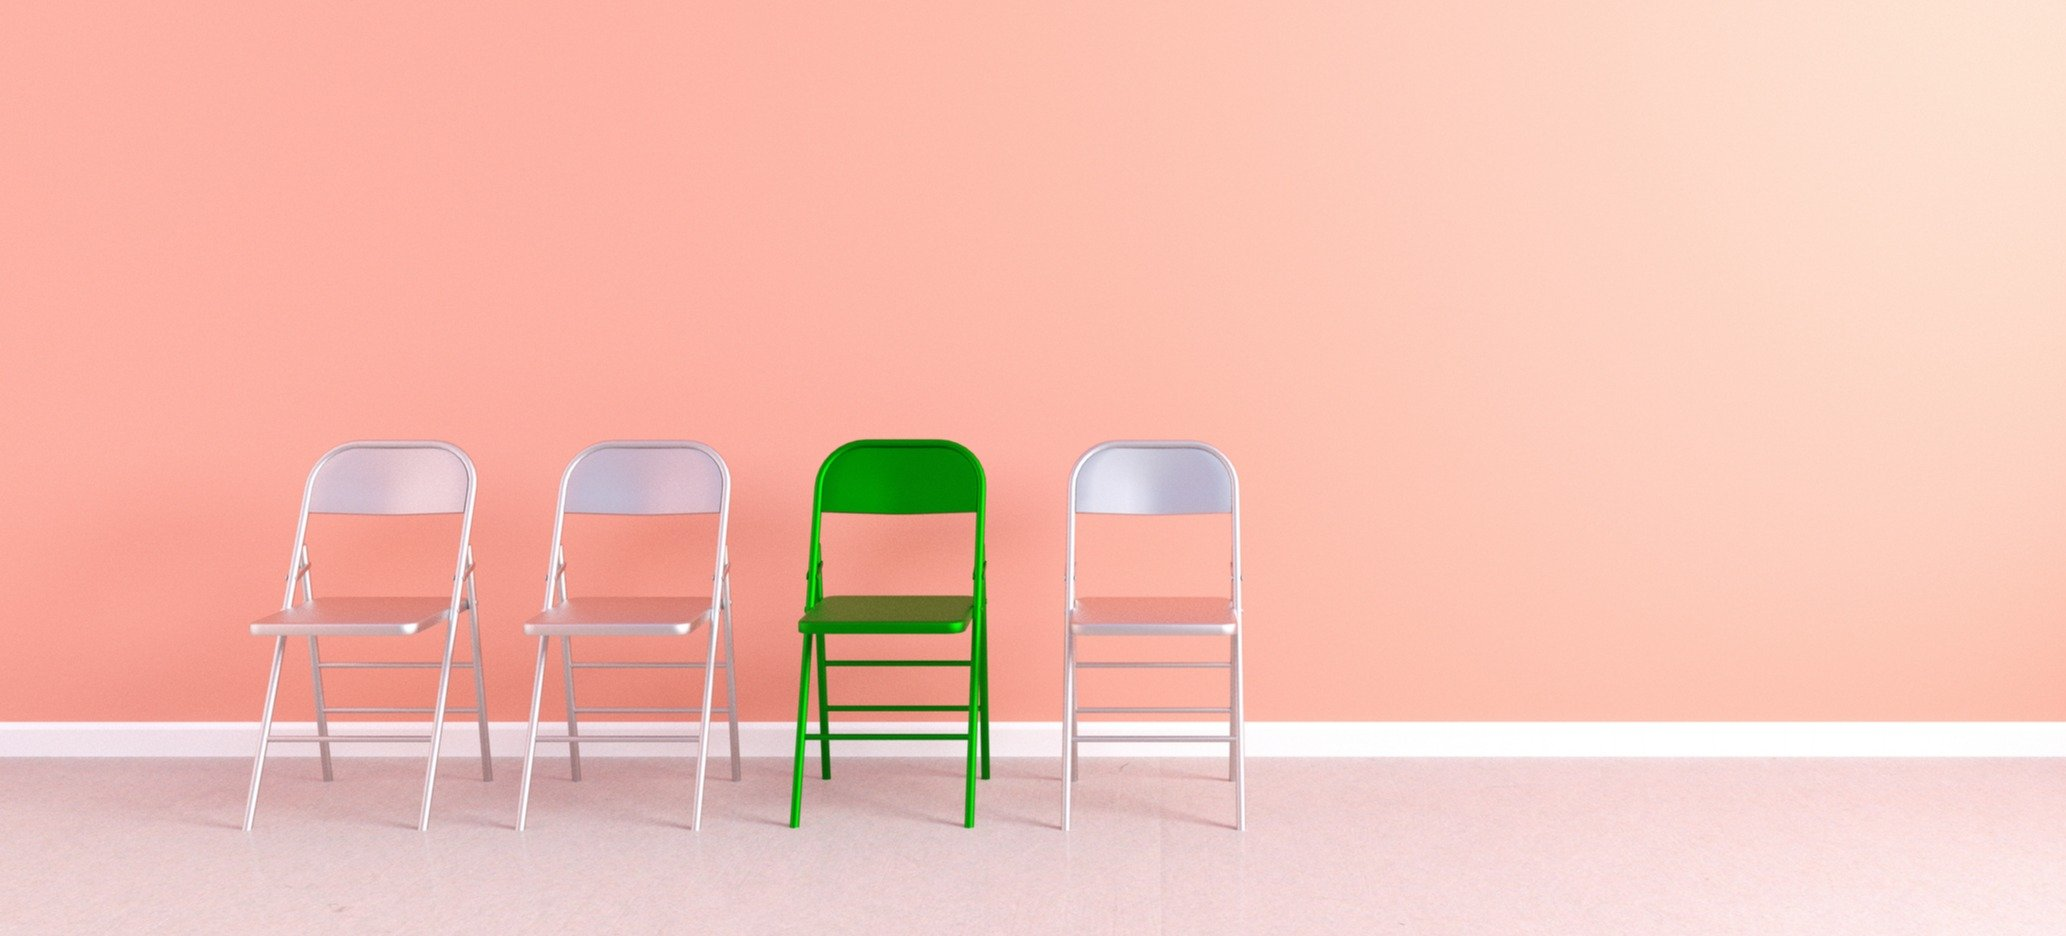 How Leaders Can Prioritize Hiring For Equity In This Moment